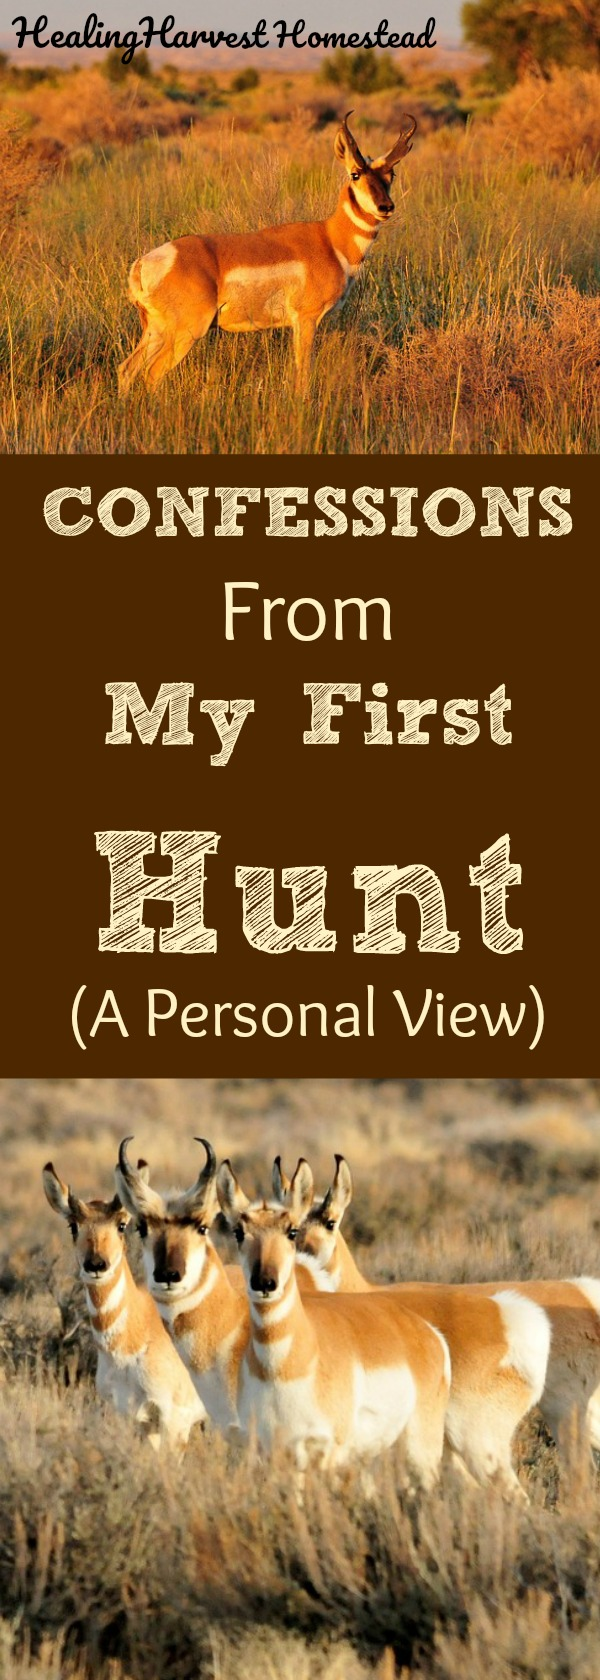 Here's what a first hunt is like. Confessions about hunting for the first time. Antelope hunting. How does a person feel after killing an animal? How does a person feel after taking a life? Is it ever ok? Here are my thoughts on the matter.